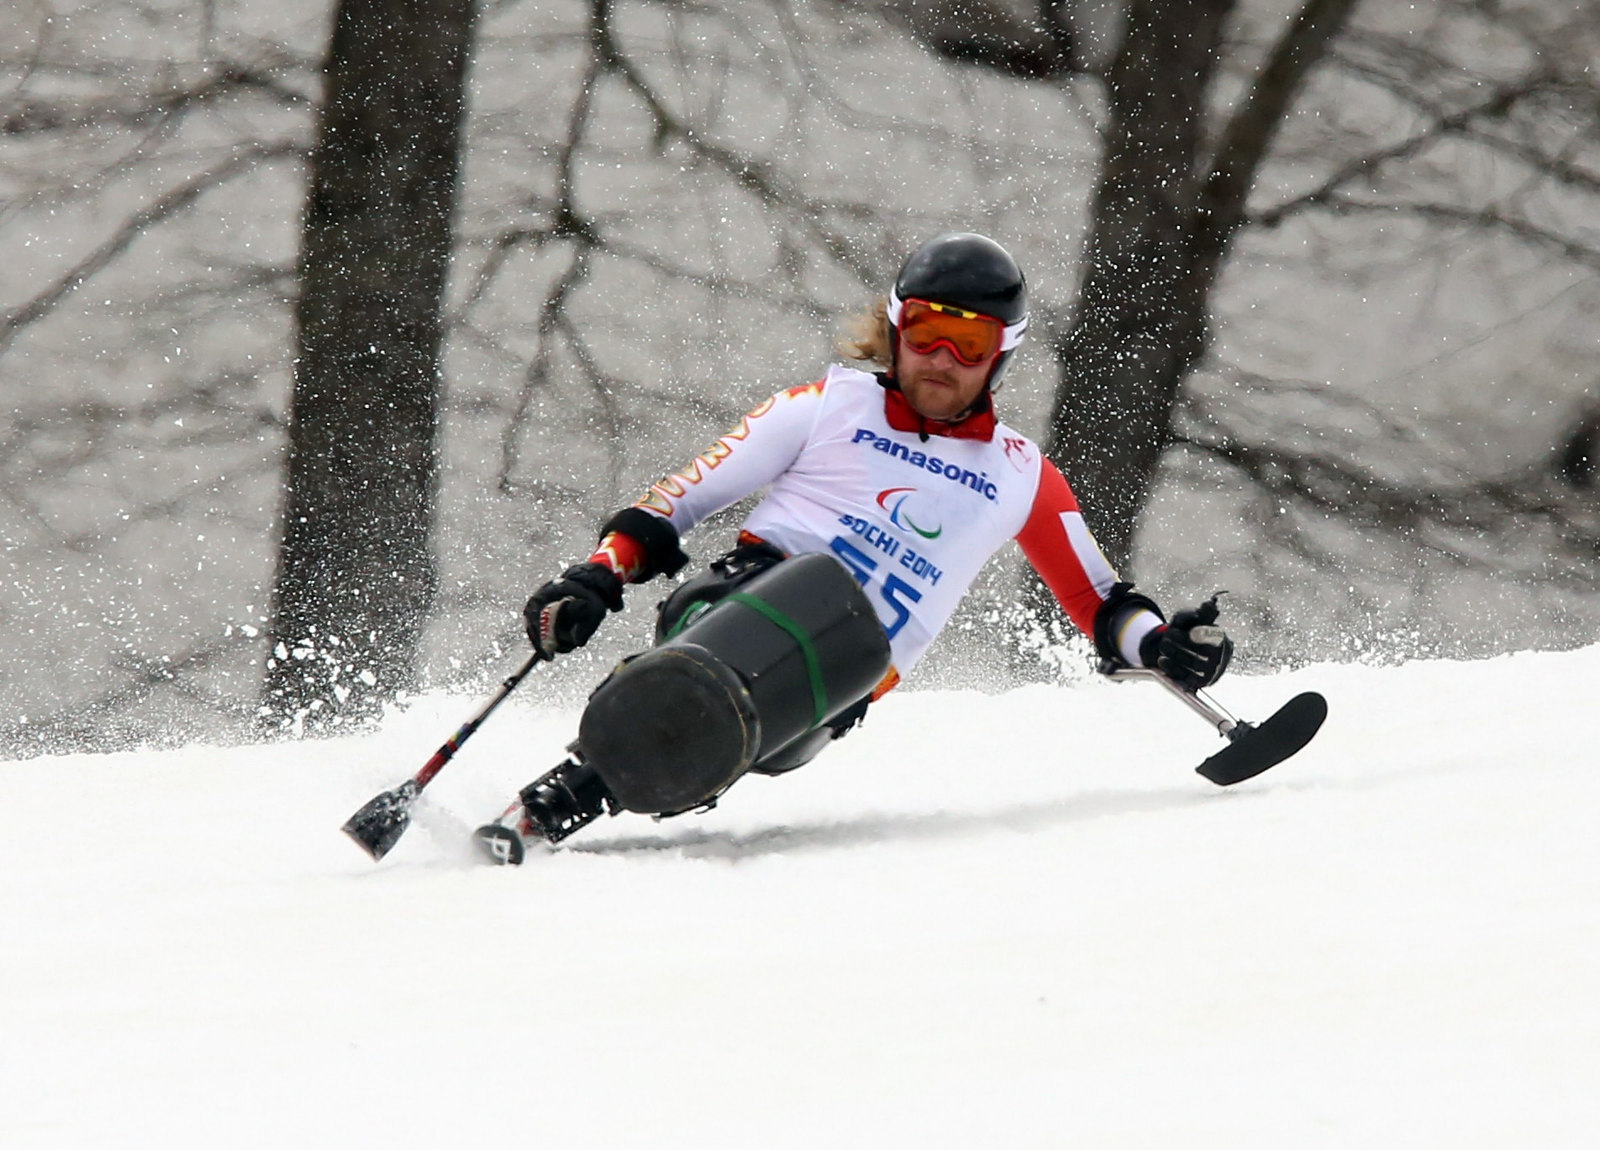 Brousseau earns a bronze medal in the super-G at the 2014 Paralympic Winter Games in Sochi, RUS